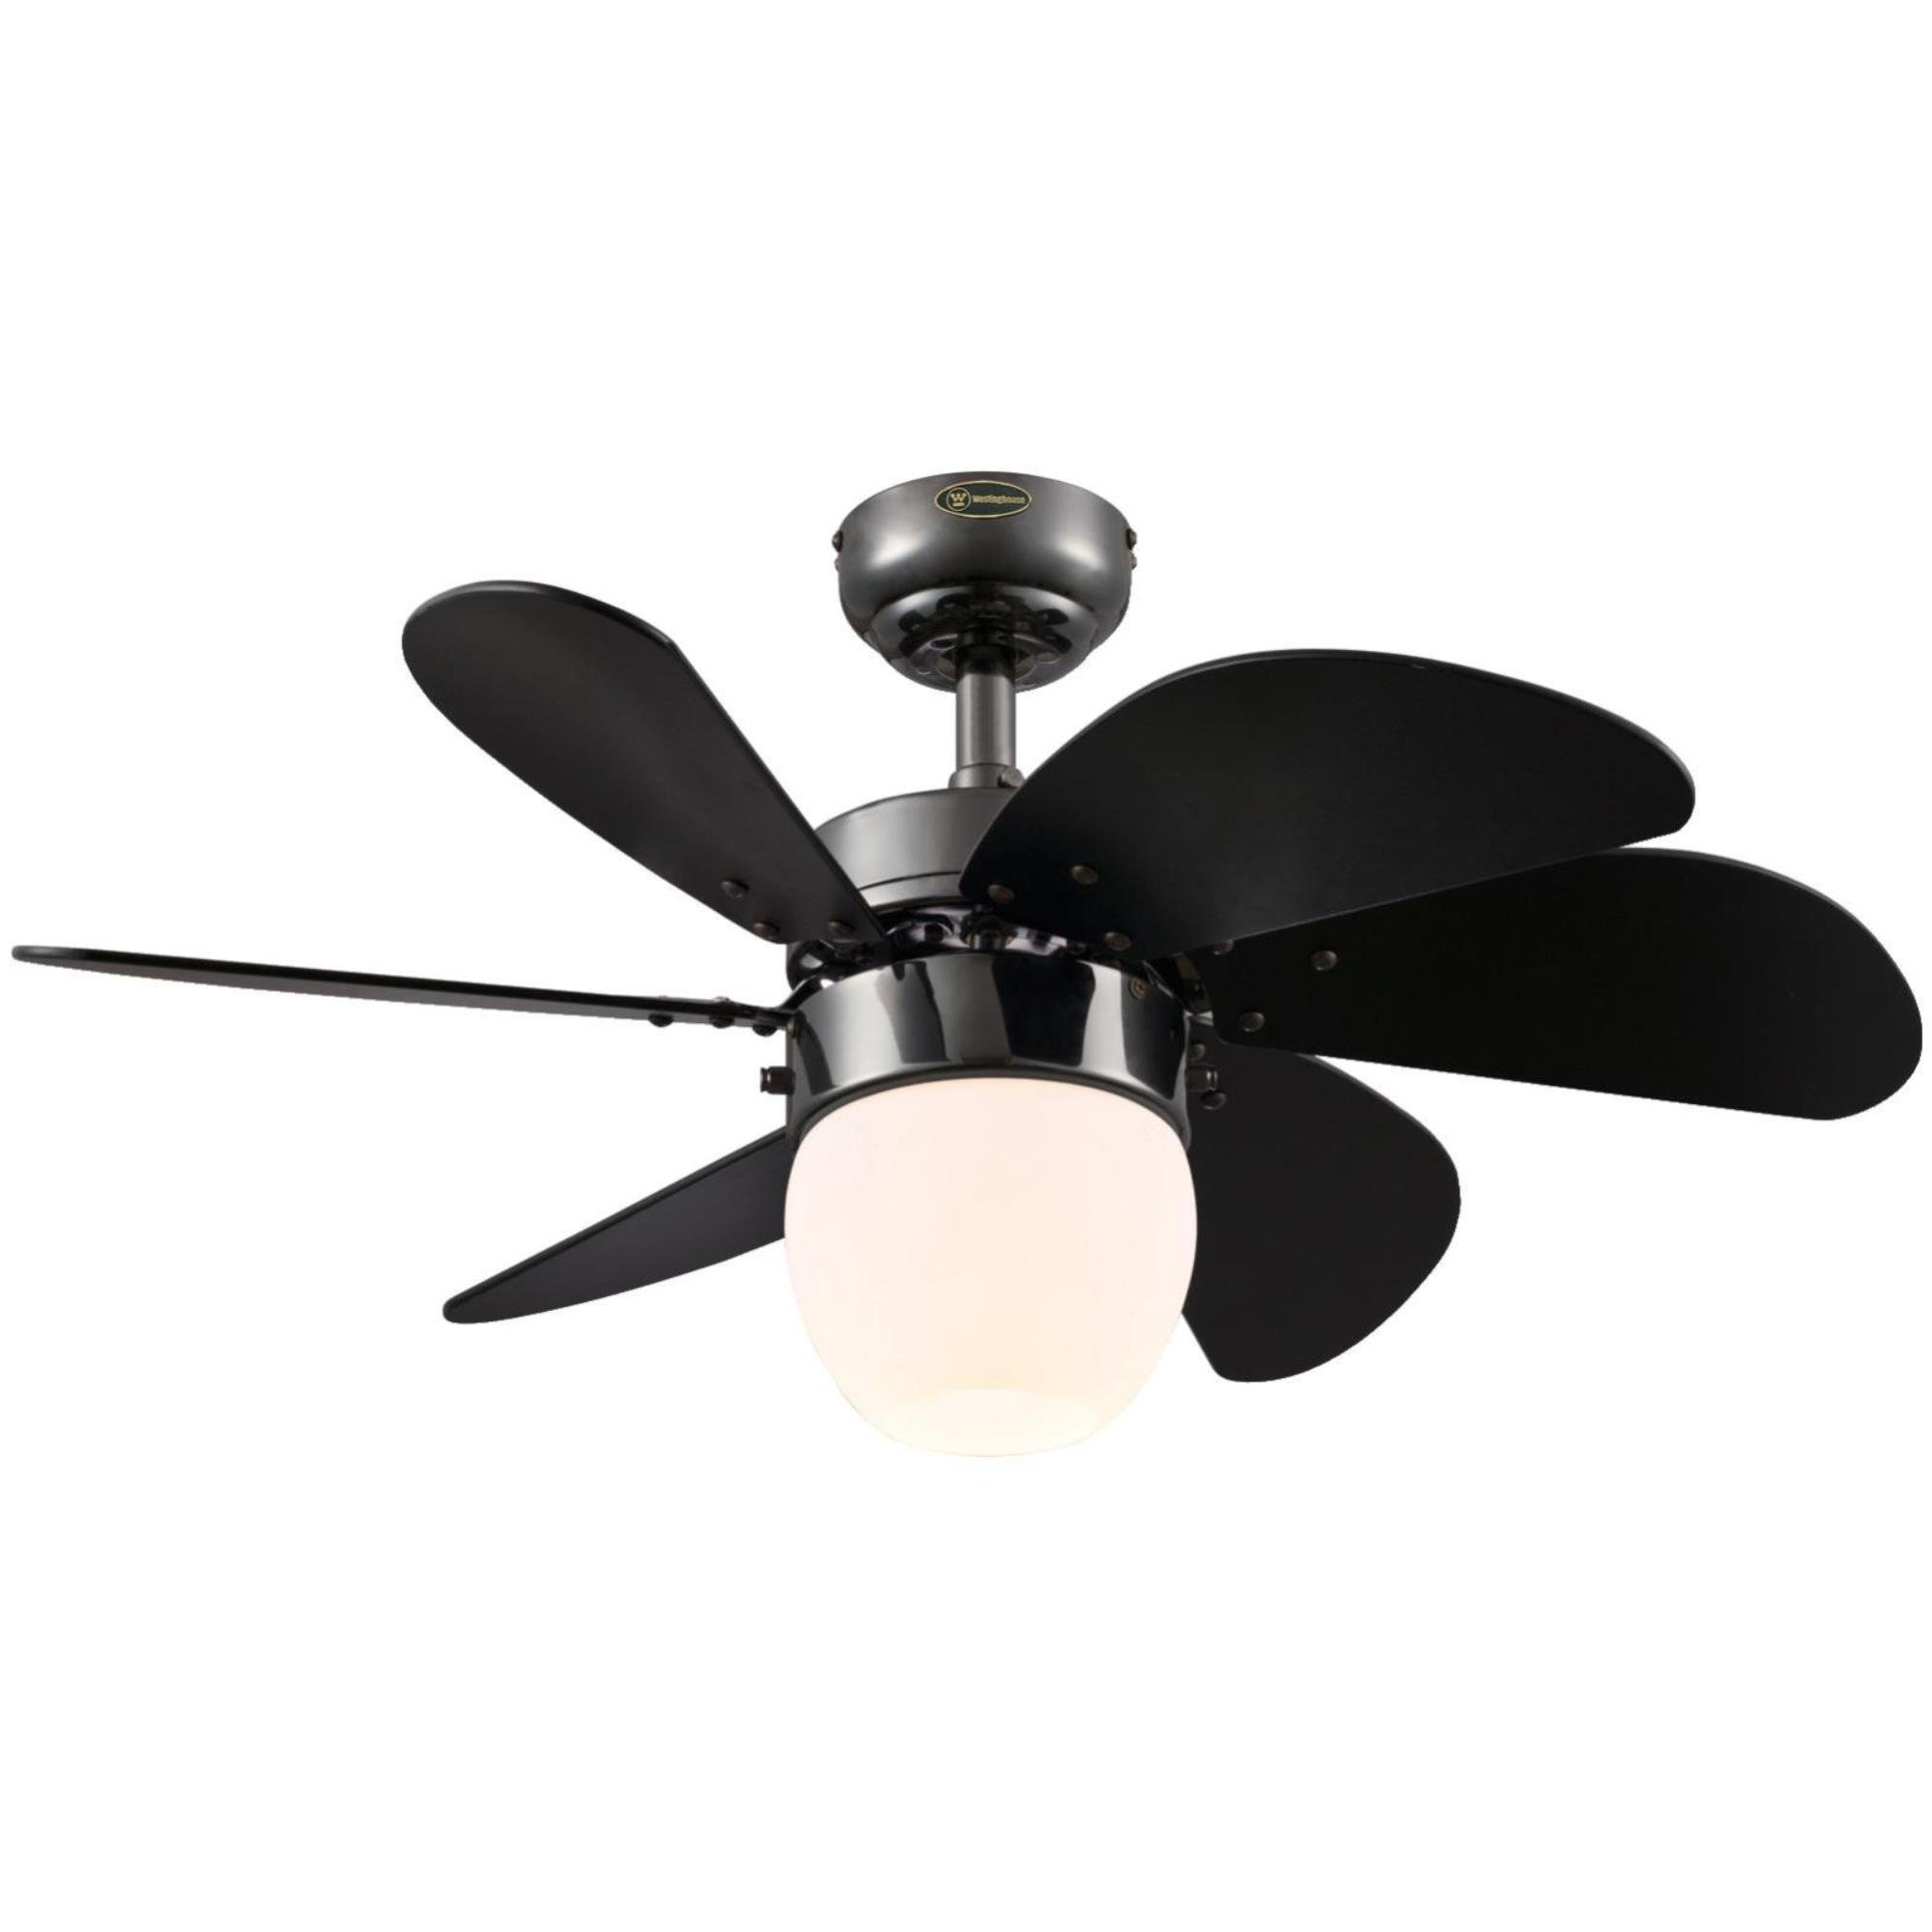 Westinghouse 7226100 Turbo Swirl CFL Single-Light 30-Inch Six-Blade Indoor Ceiling Fan, Gun Metal with Opal Frosted Glass by Westinghouse Lighting (Image #1)